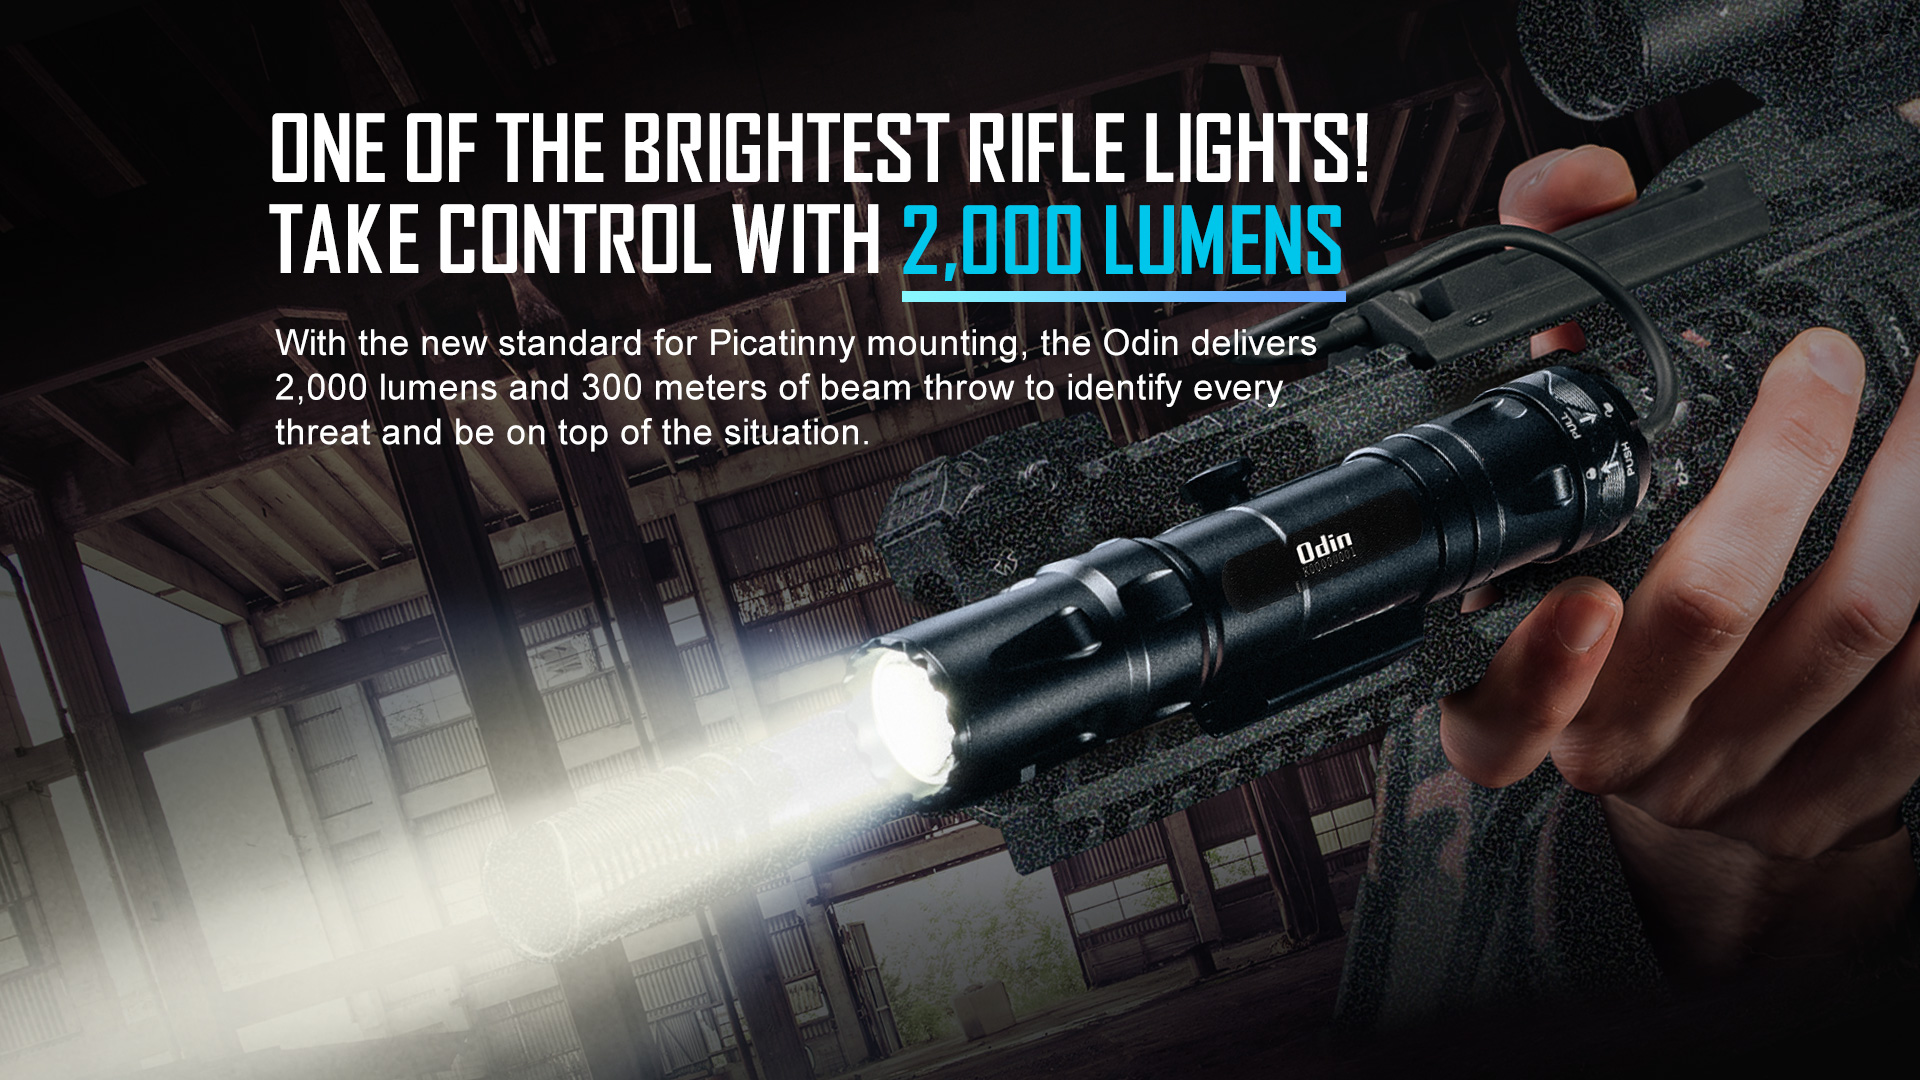 Odin Military Flashlight MAX 2,000 lumens and 300 meters